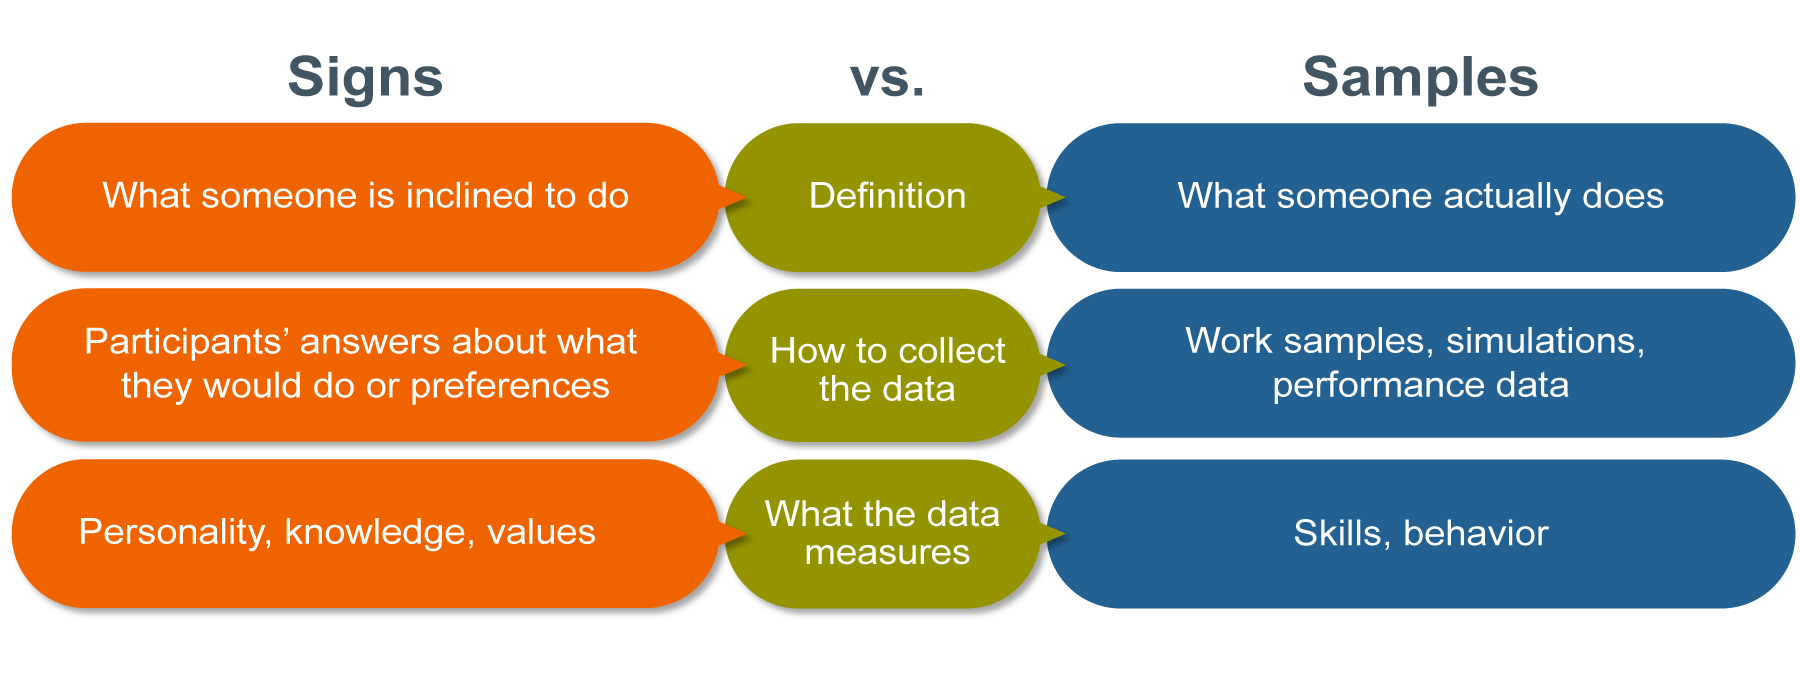 Chart depicting the leadership assessment types based on whether they collect data from signs vs samples. Under definition, signs data is what someone is inclined to do, while samples are what someone actually does. In terms of collecting data, signs data collect participants answers about what they would do or preferences, while samples collects work samples, simulations, or performance data. For what the data measures, Signs data measures personality, knowledge, and values, while Samples measures skills and behavior.